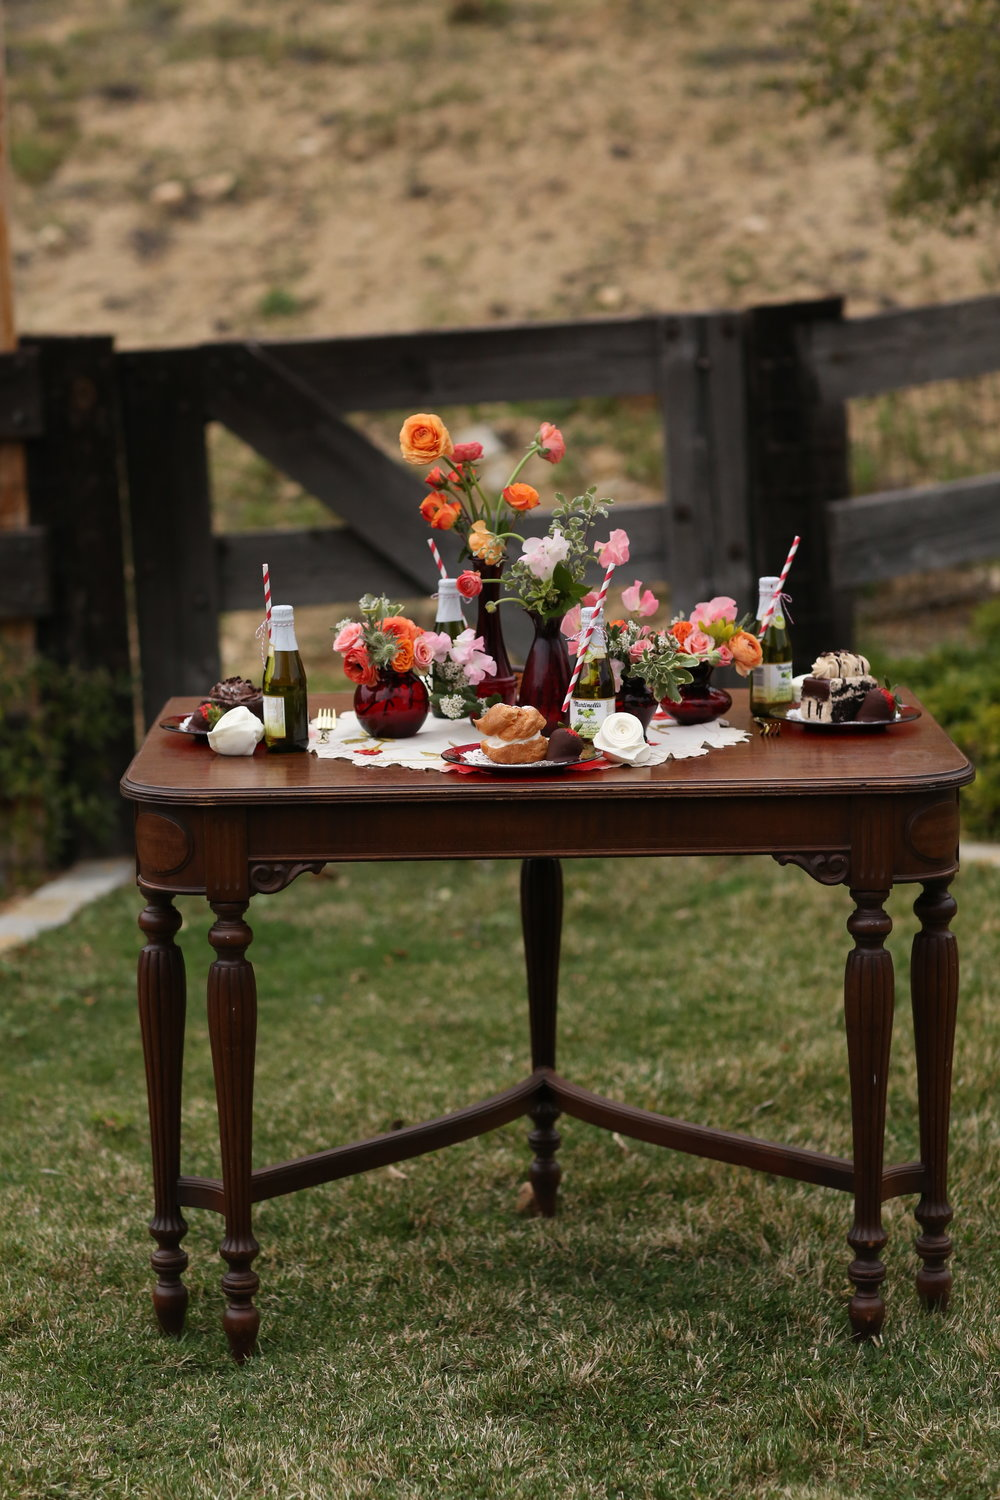 Vintage table with red ruby glass accents. Vintage wedding rentals in the Temecula Valley.